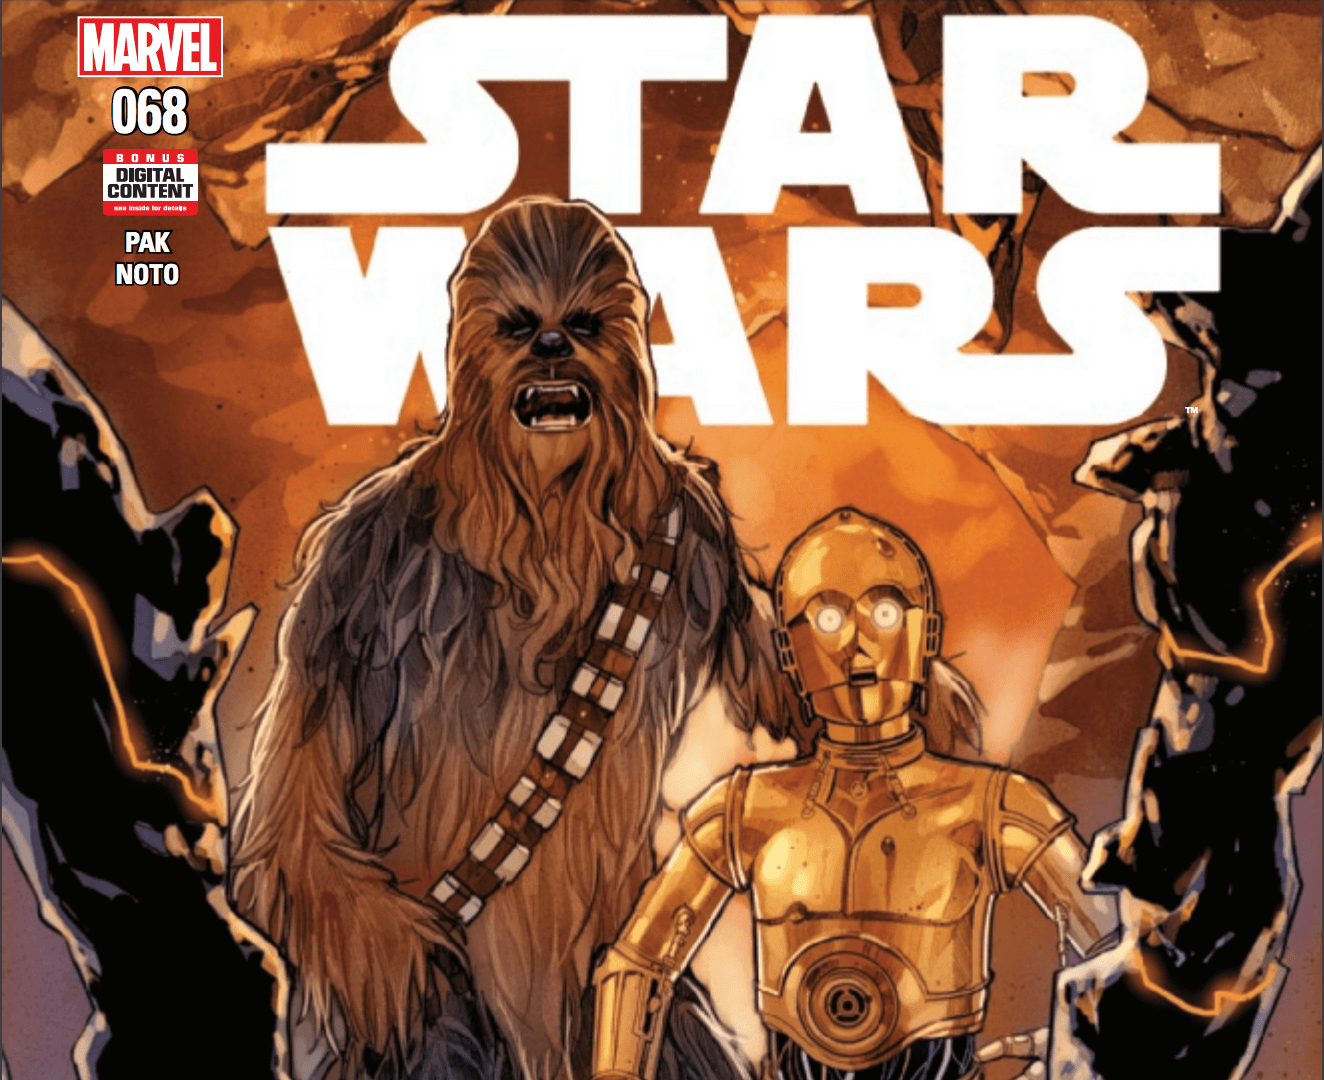 Star Wars #68 review:  The start of a new era